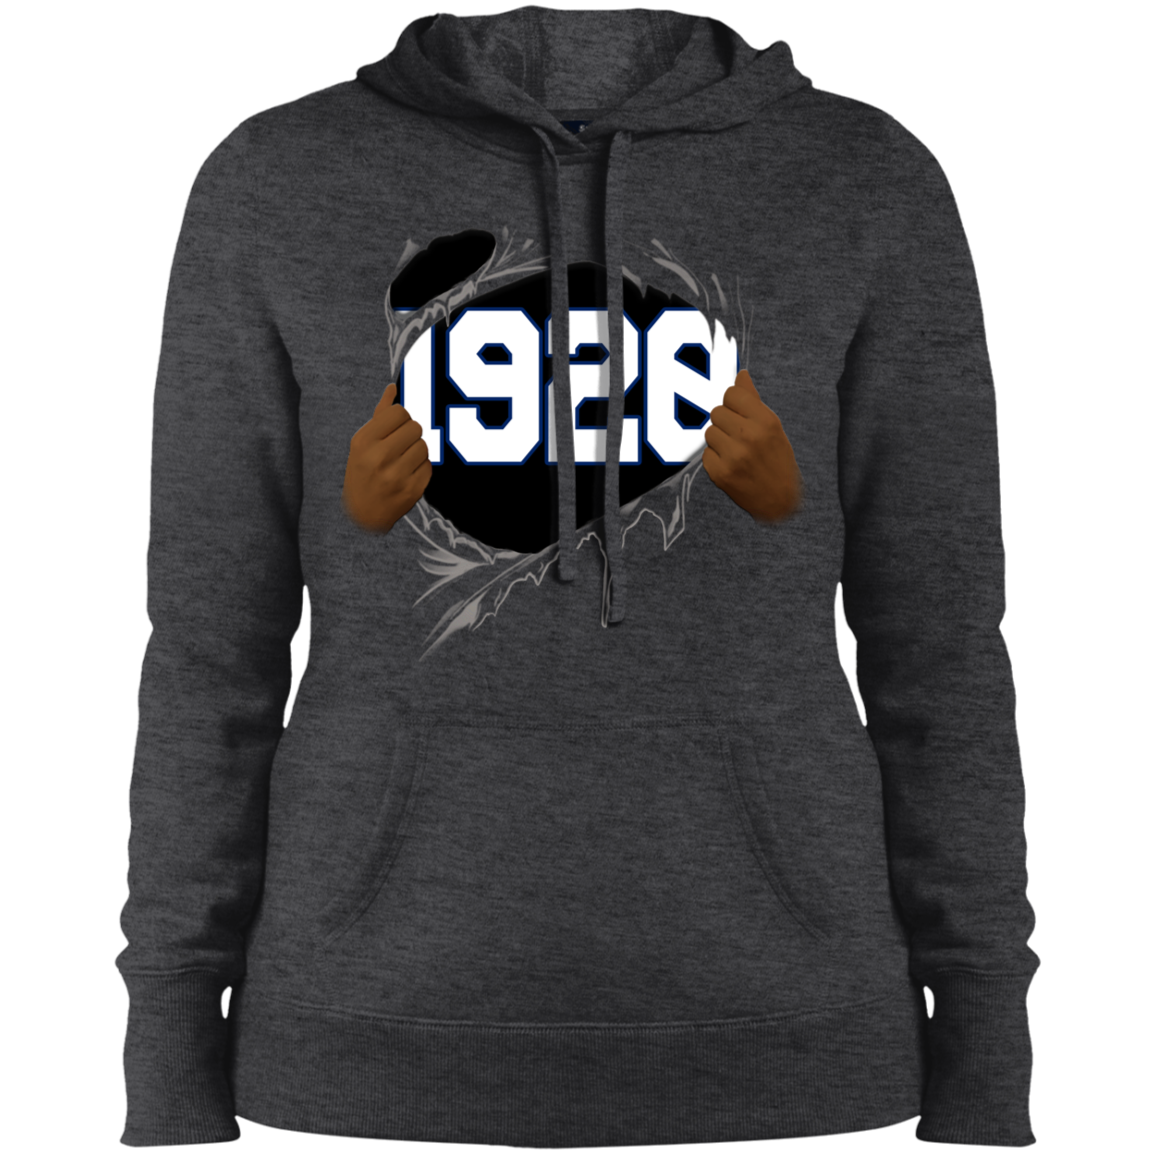 1920 Ripped Hooded Sweatshirt